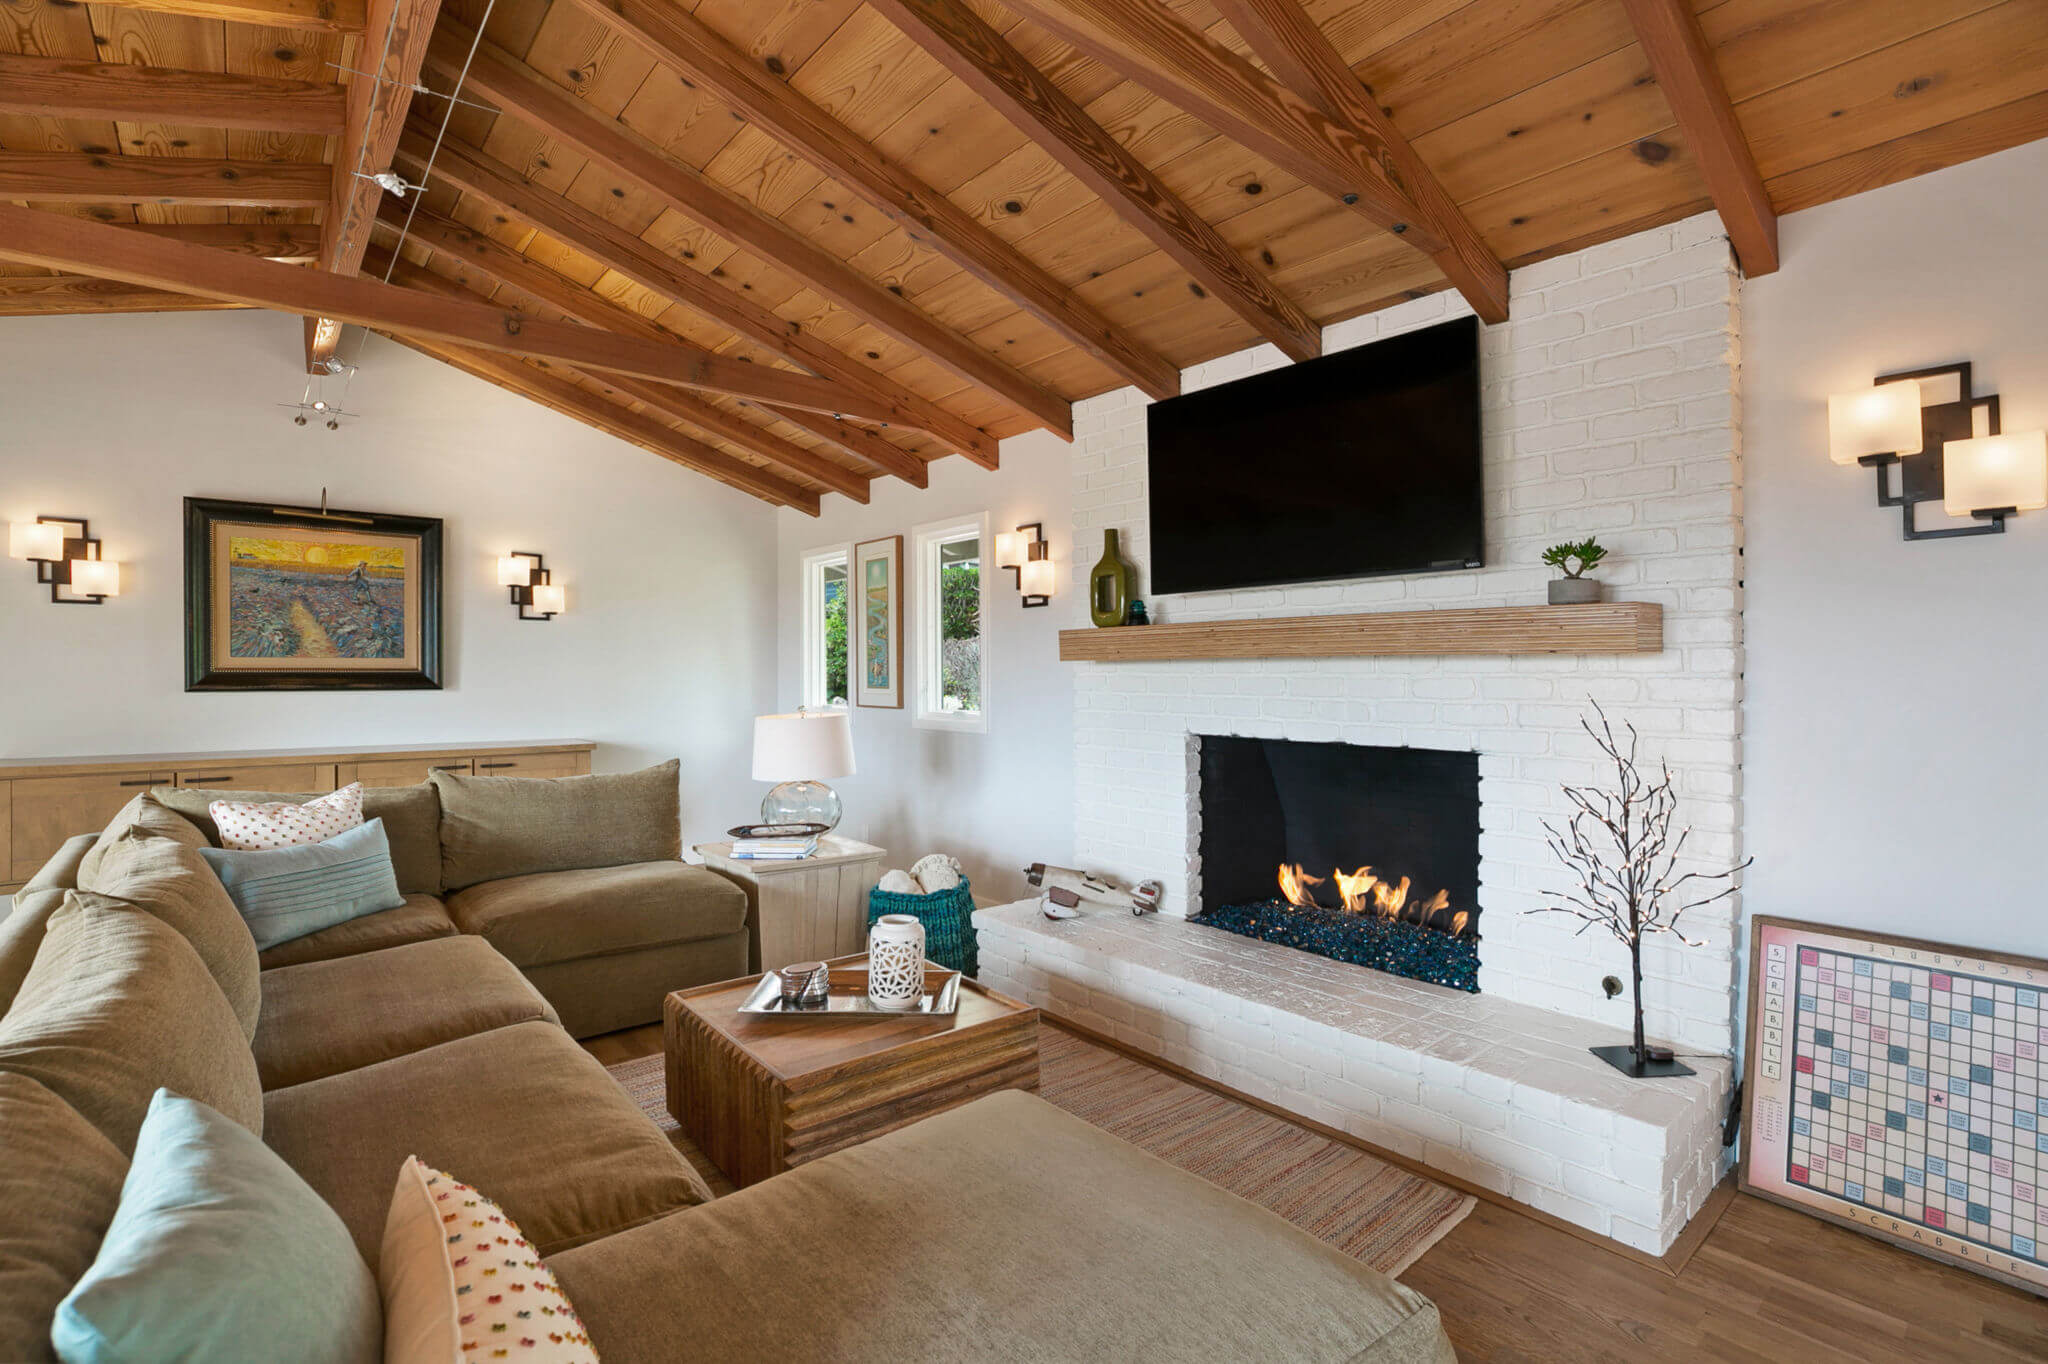 Remodeling Services in San Clemente, San Clemente Home Remodeling Services, Home Remodel in Orange County